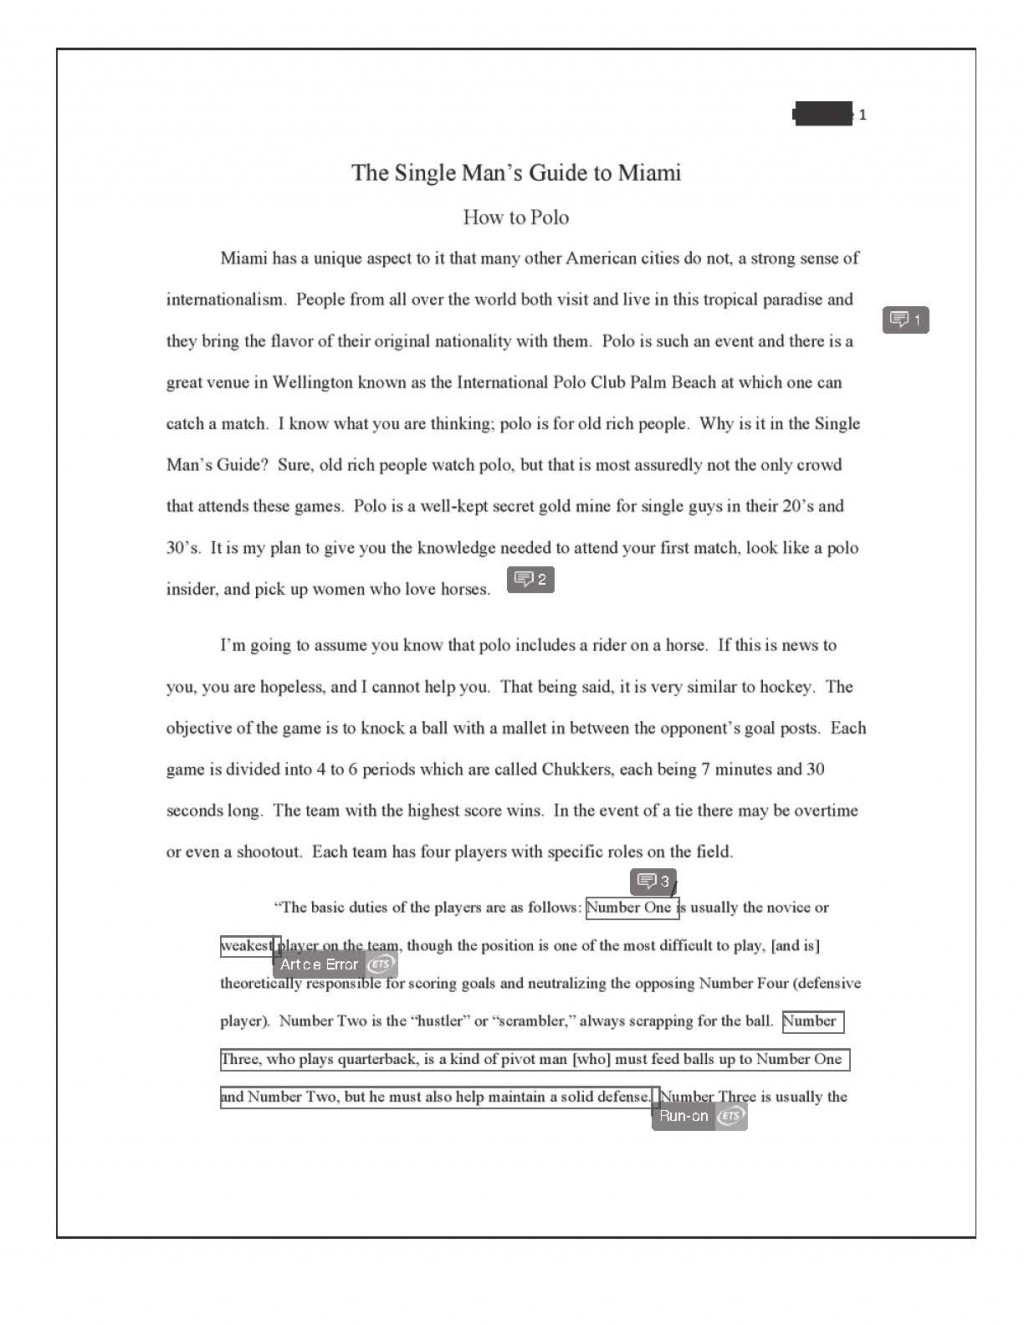 009 Informative Essay Final How To Polo Redacted Page 2 Example Introduction Frightening Examples Paragraph Large